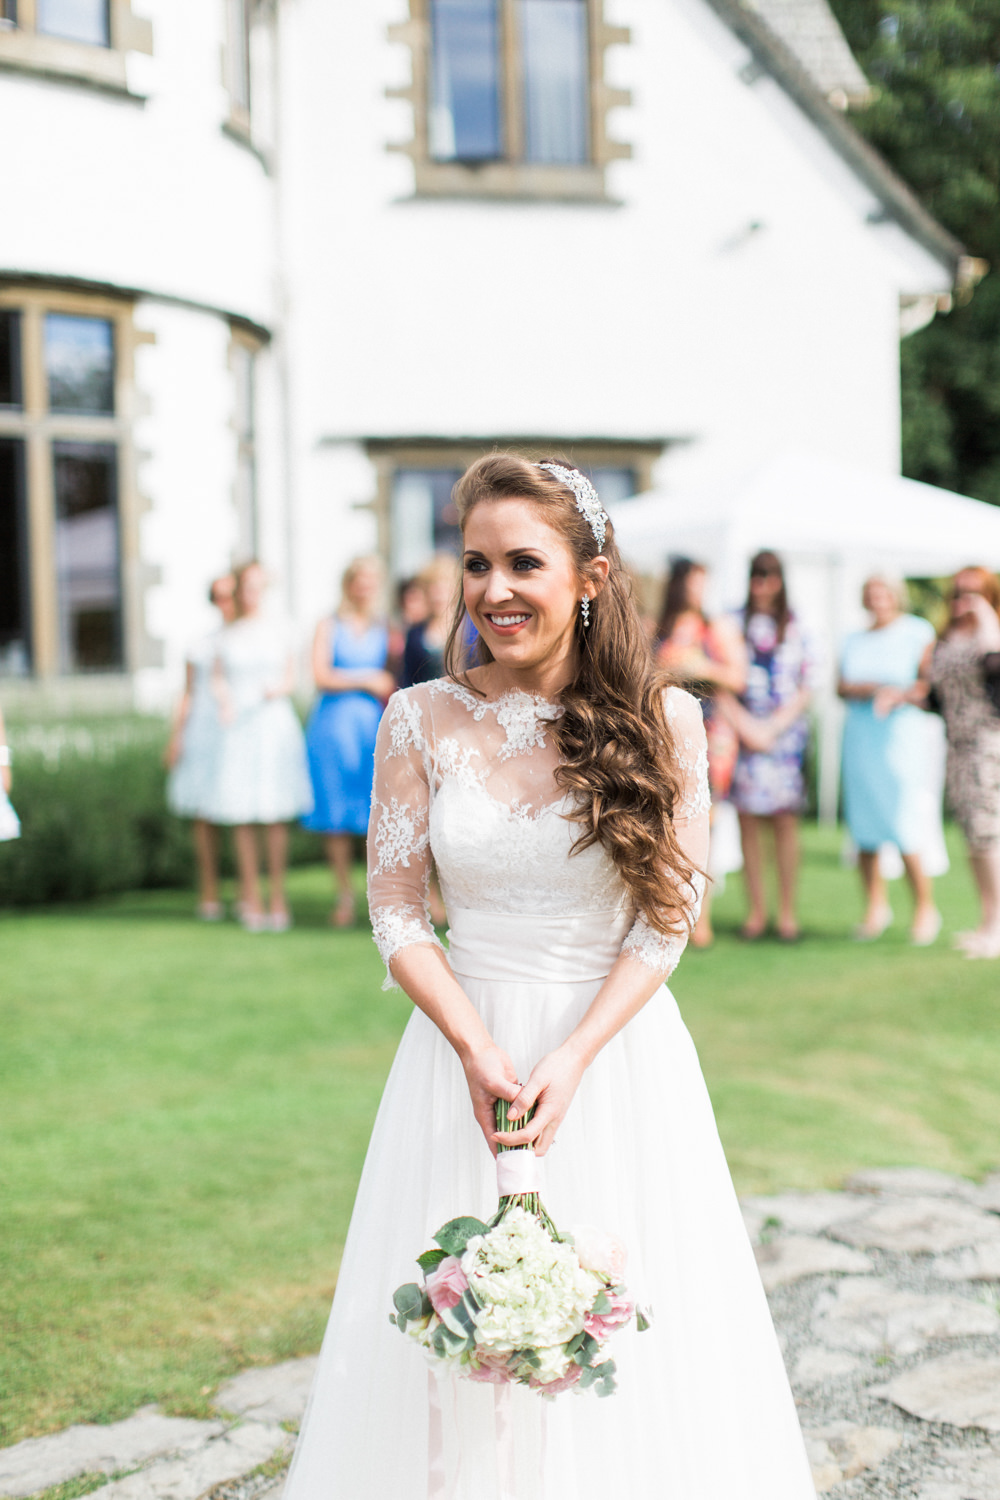 Intimate Pastel Country Wedding at Gossel Ridding nr Lake Windermere